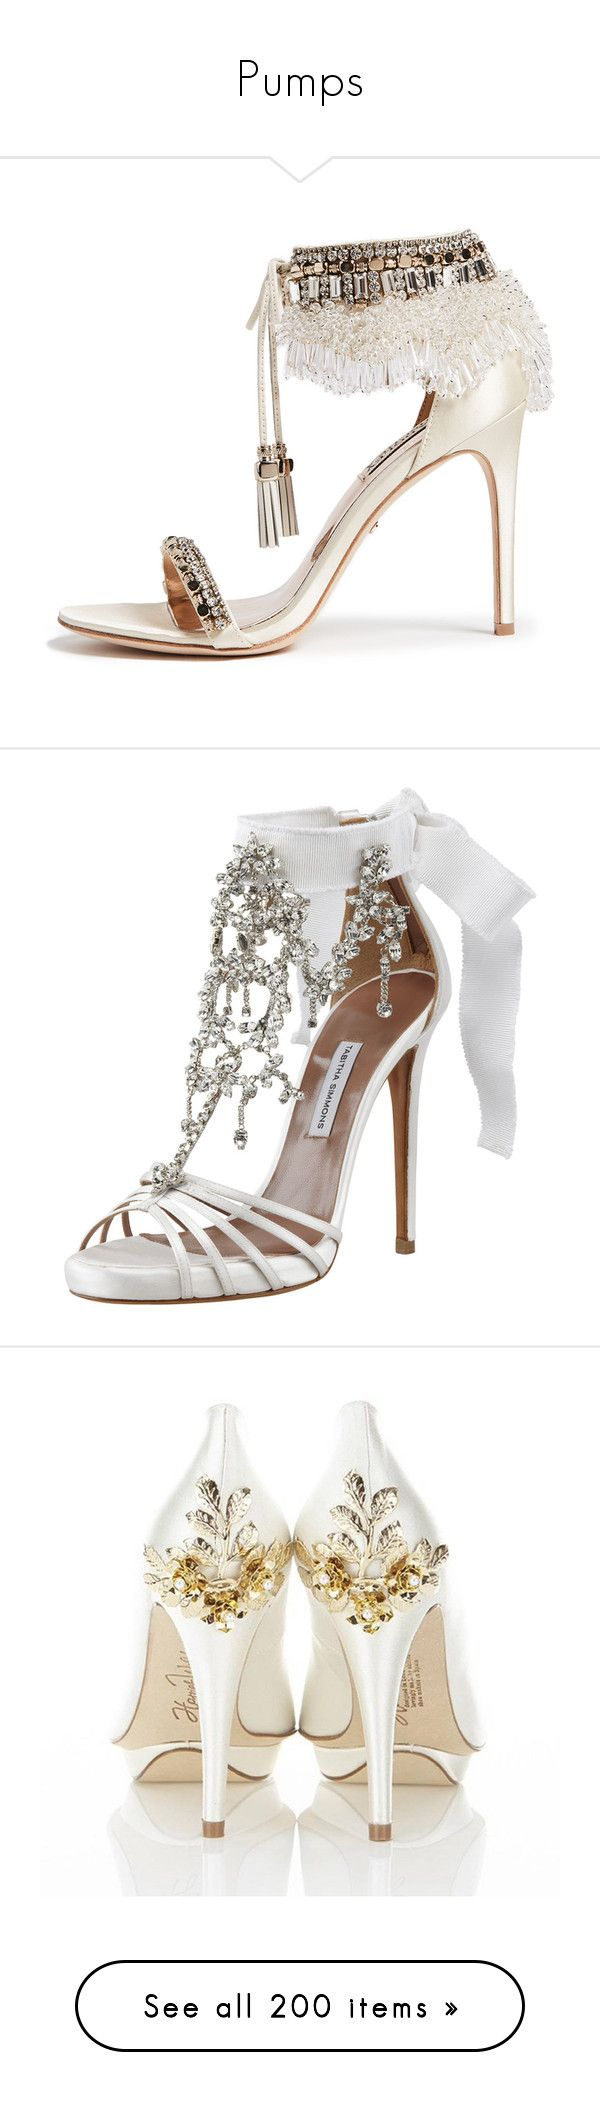 """Pumps"" by najwa-bna ❤ liked on Polyvore featuring shoes, sandals, ivory, satin shoes, glitter sandals, fringe tassel sandals, badgley mischka sandals, beaded sandals, heels and sapatos"